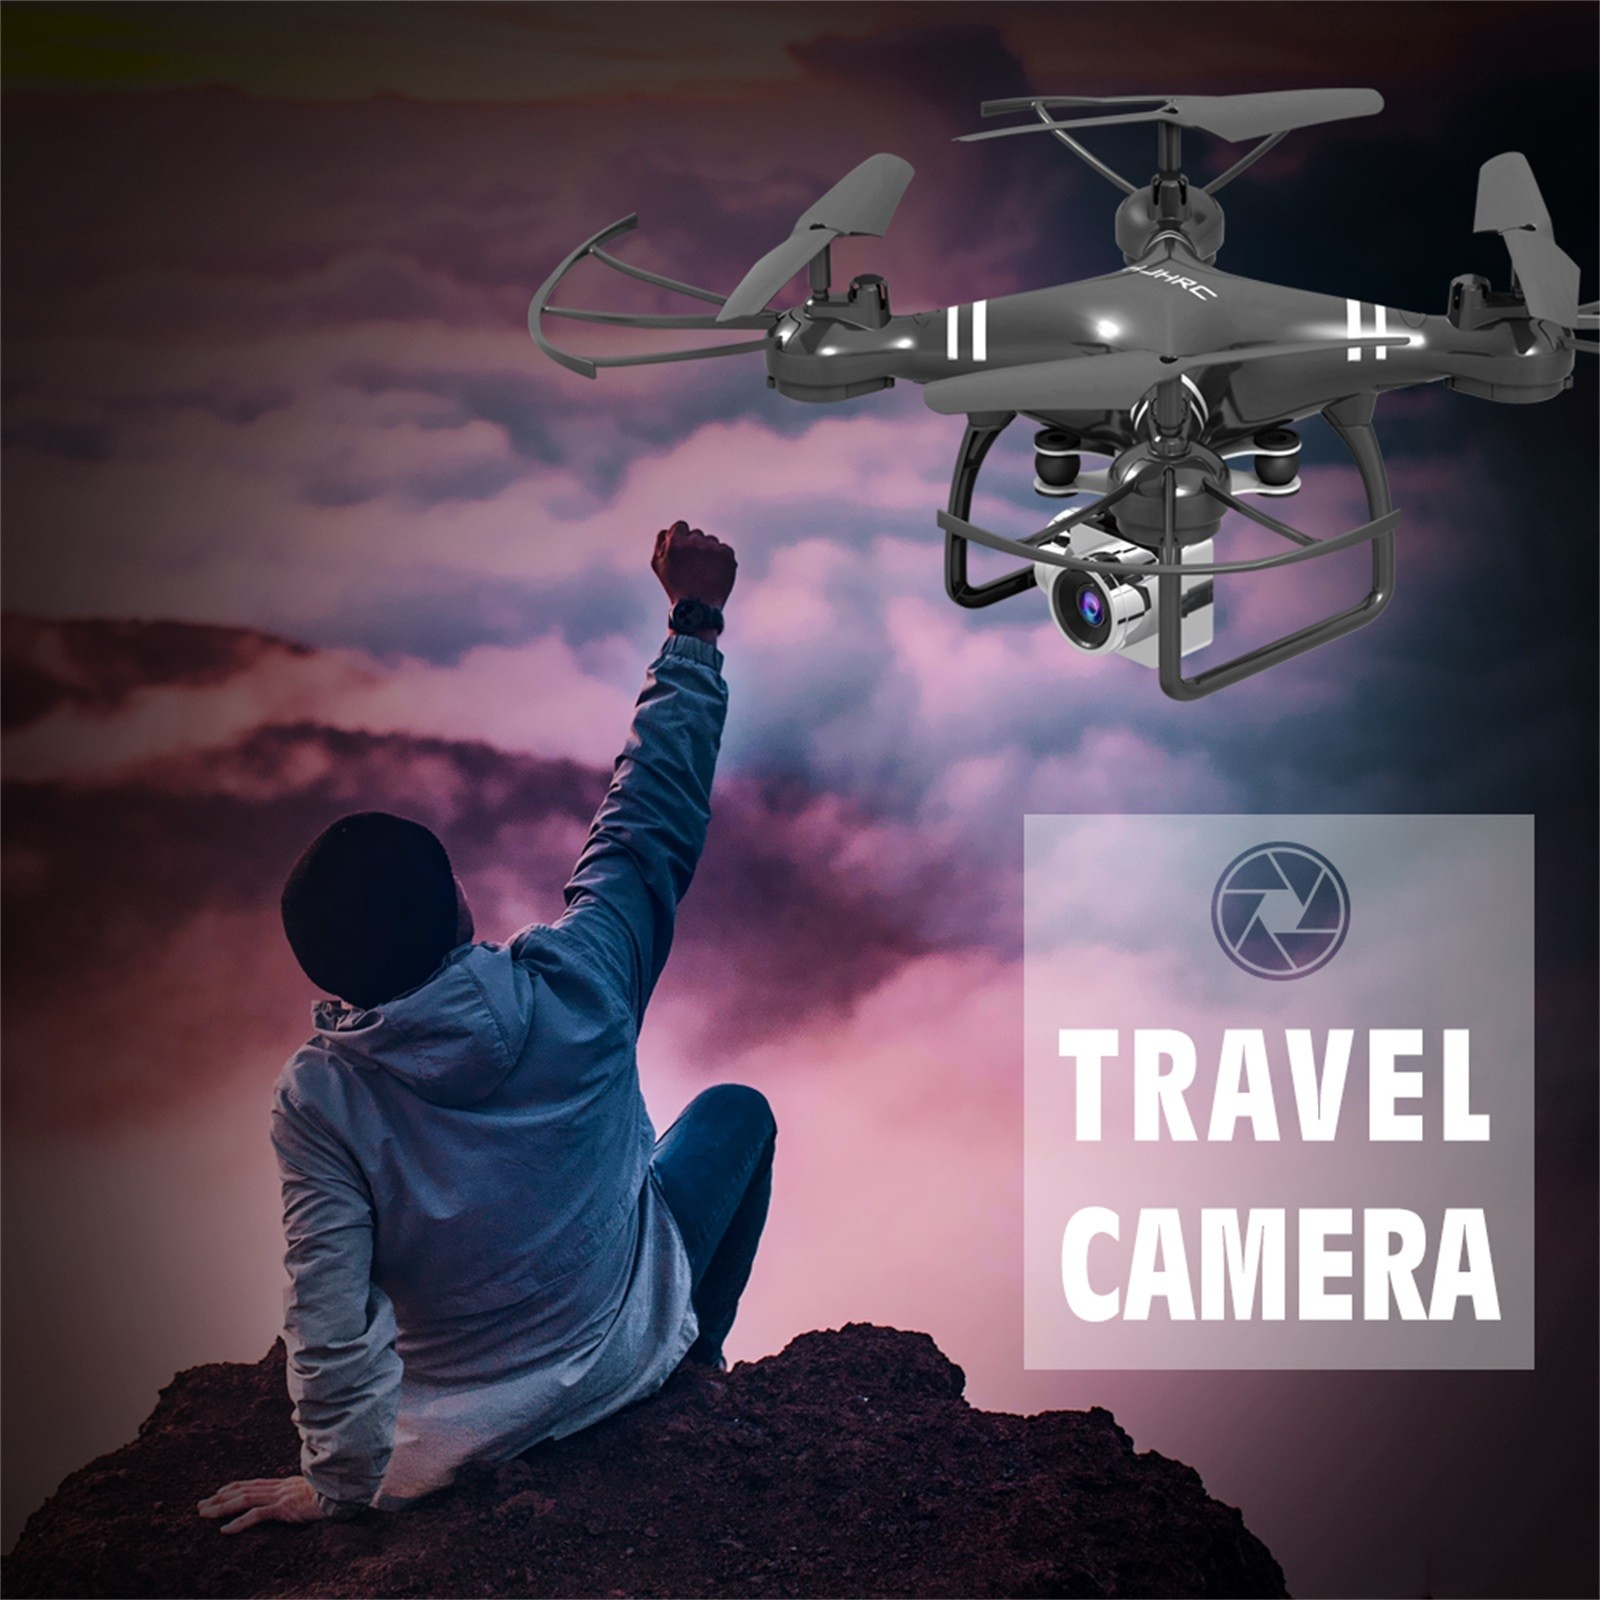 Hd8144eac37d74ab885cc26d10a1c0c8bA - Hjhrc Four-axis Aerial Photography Aircraft Drone With Camera Hd 4k Wifi Fpv Foldable Drone Height Holding Headless Quadcopter